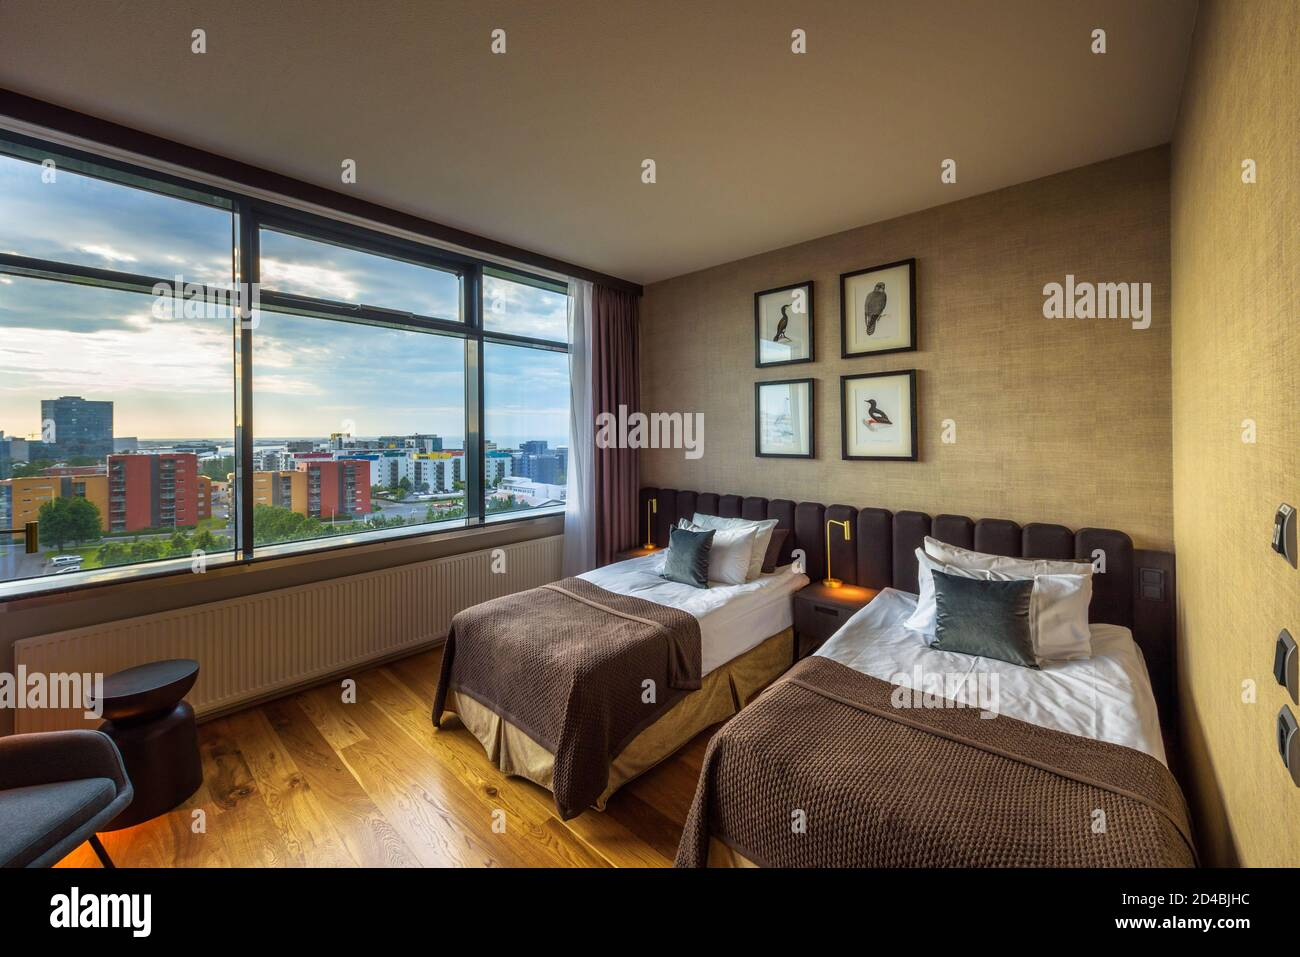 Interior Of A Room With City View In Grand Hotel Reykjavik Iceland Stock Photo Alamy